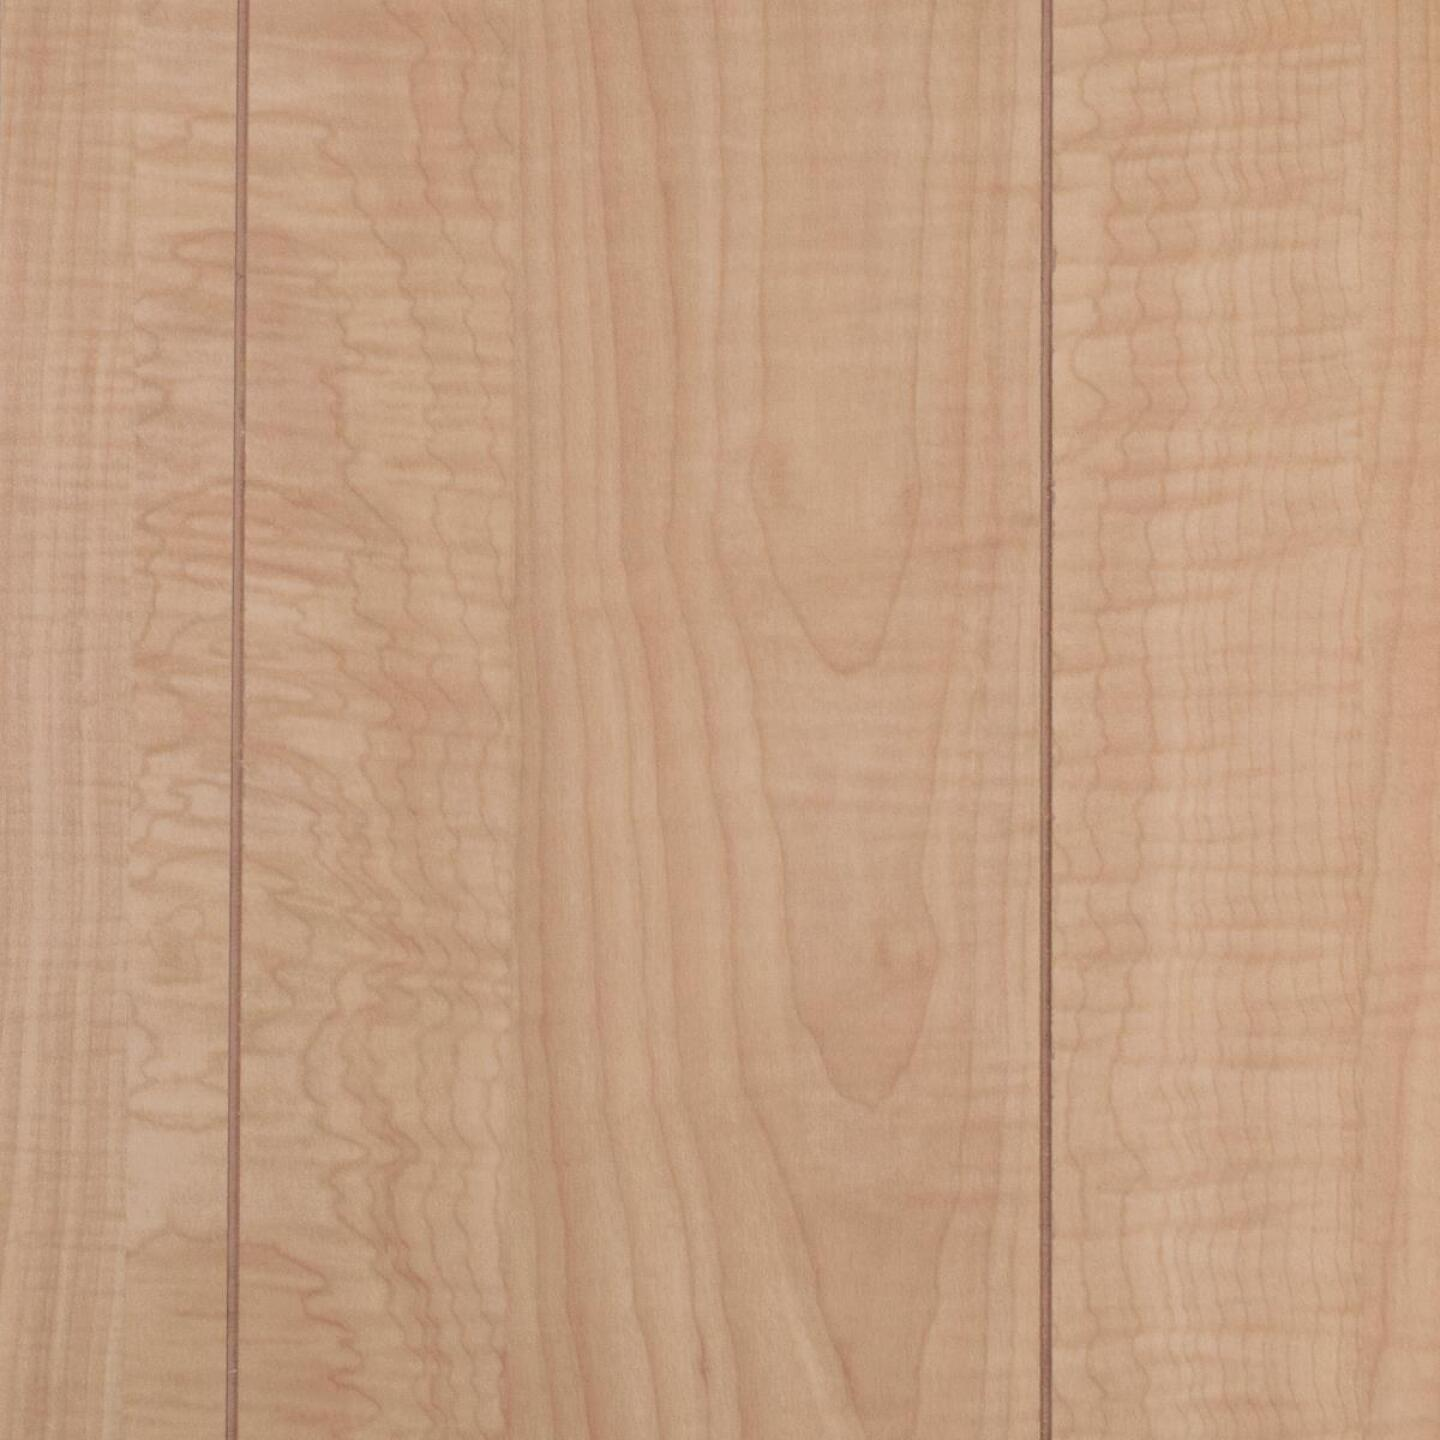 Global Product Sourcing 4 Ft. x 8 Ft. x 1/8 In. Maple Shade Random Groove Profile Wall Paneling Image 1